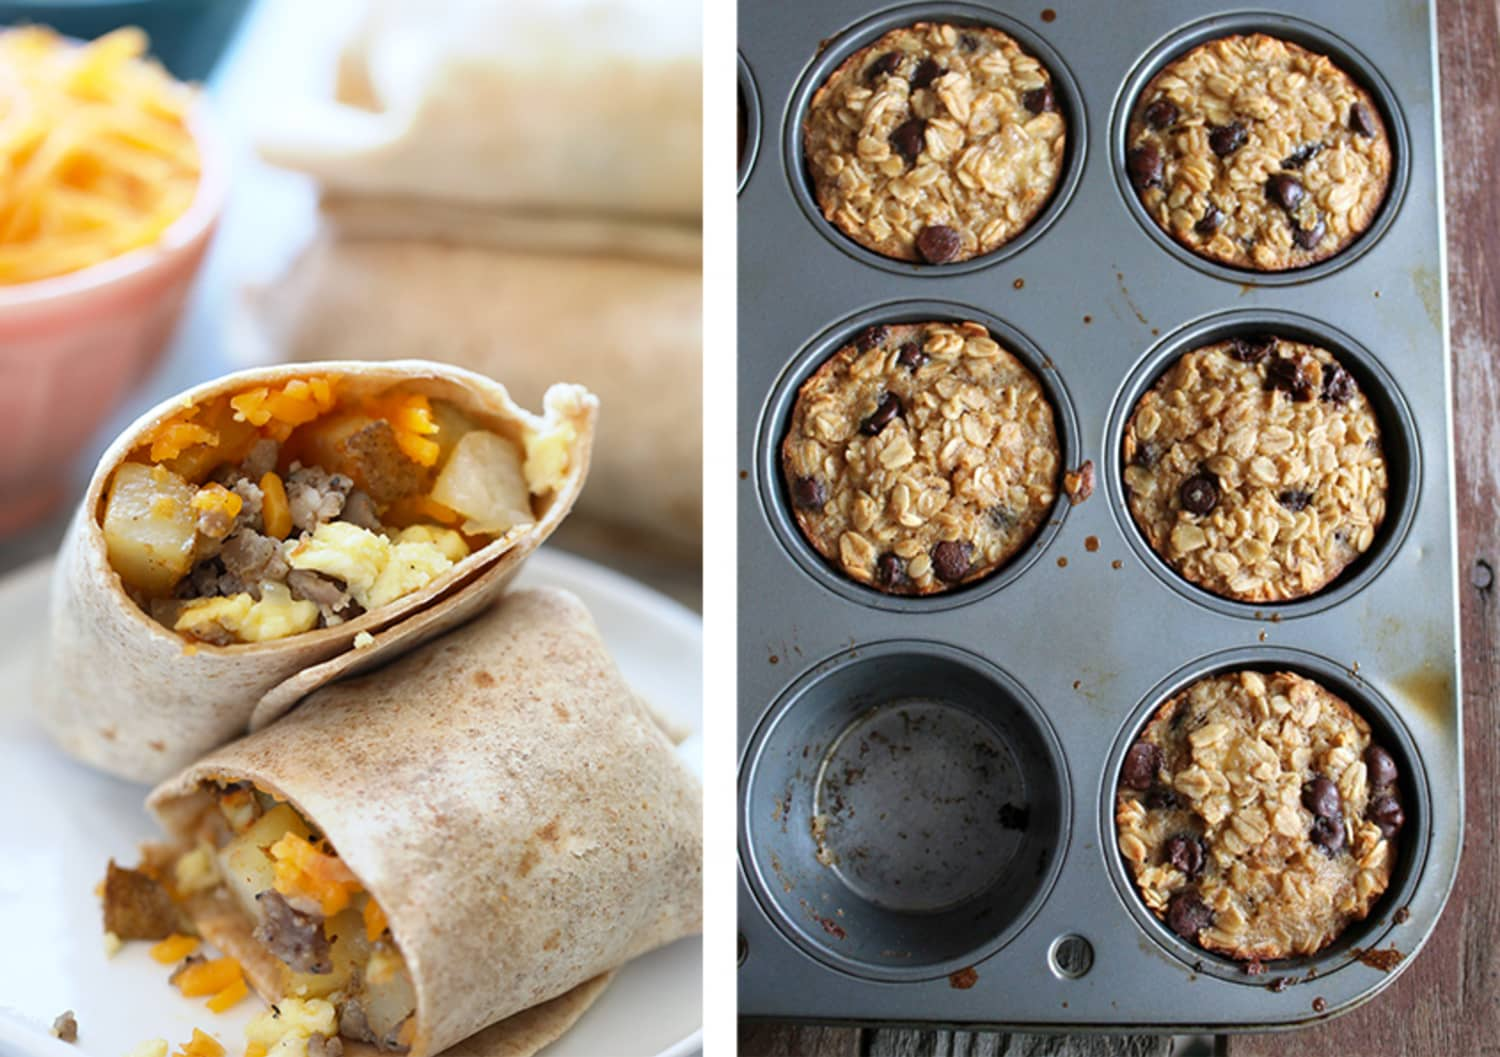 The Most Popular Back-to-School Breakfast Recipes, According to Pinterest